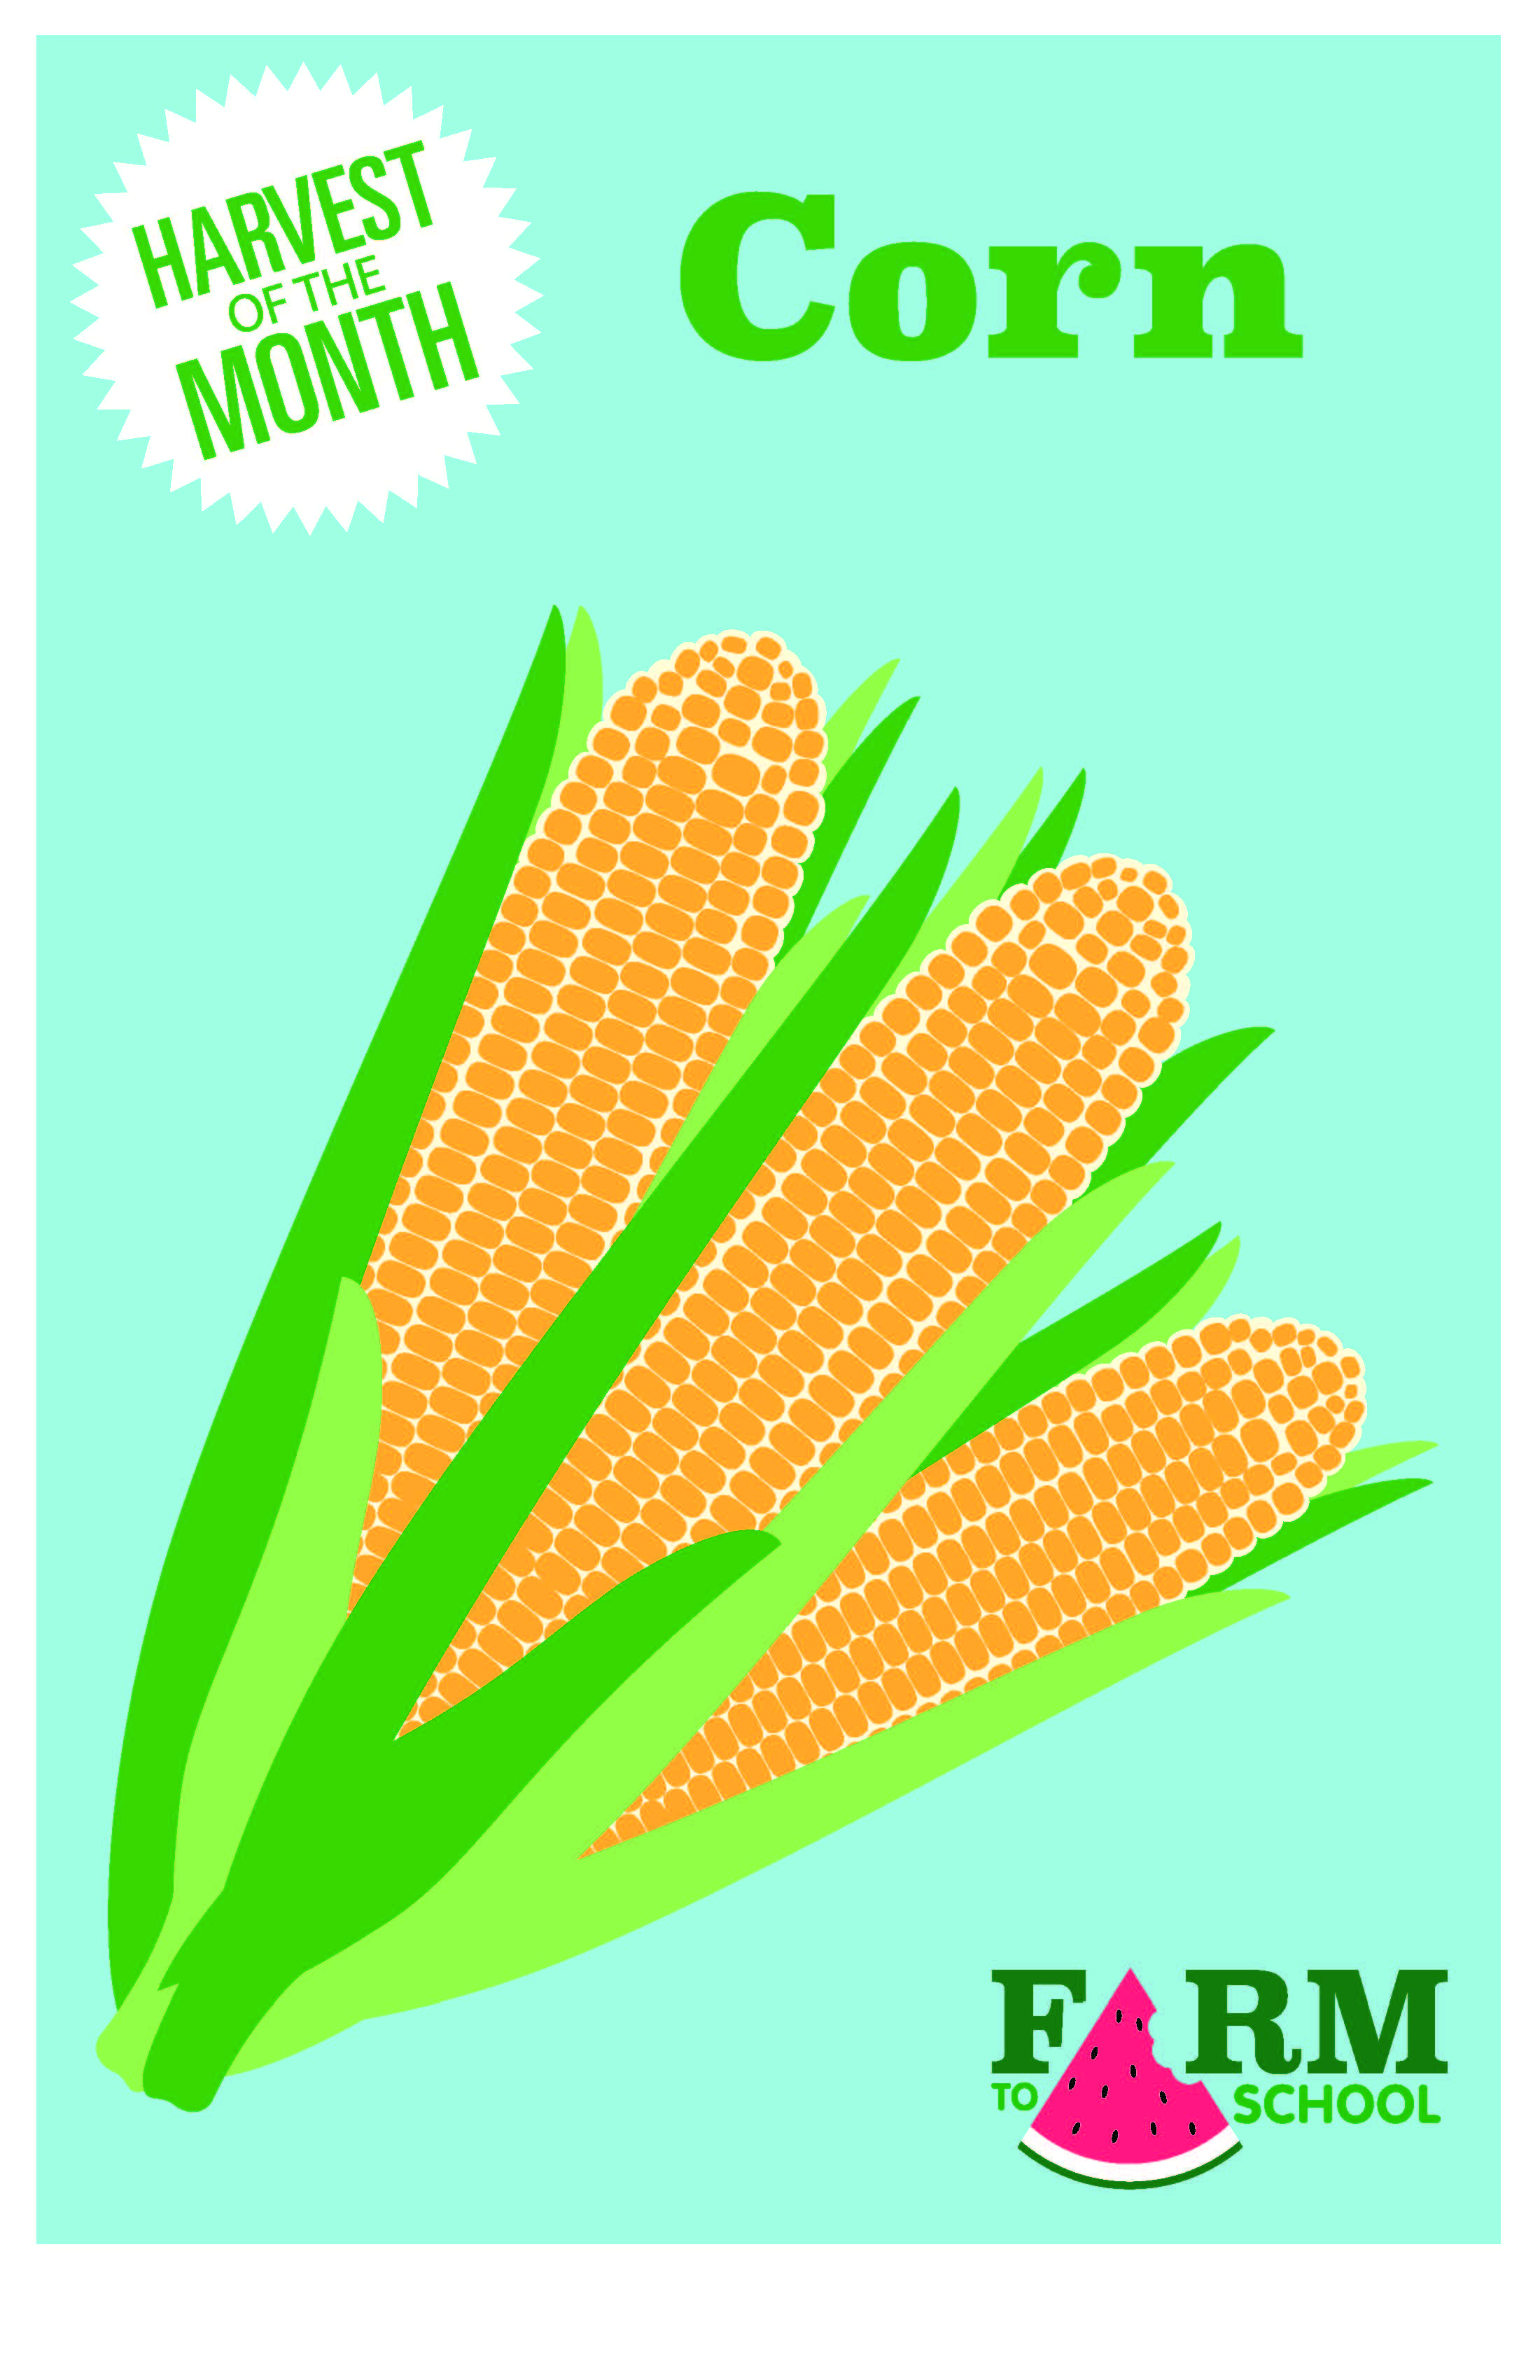 Food of the Month is Corn